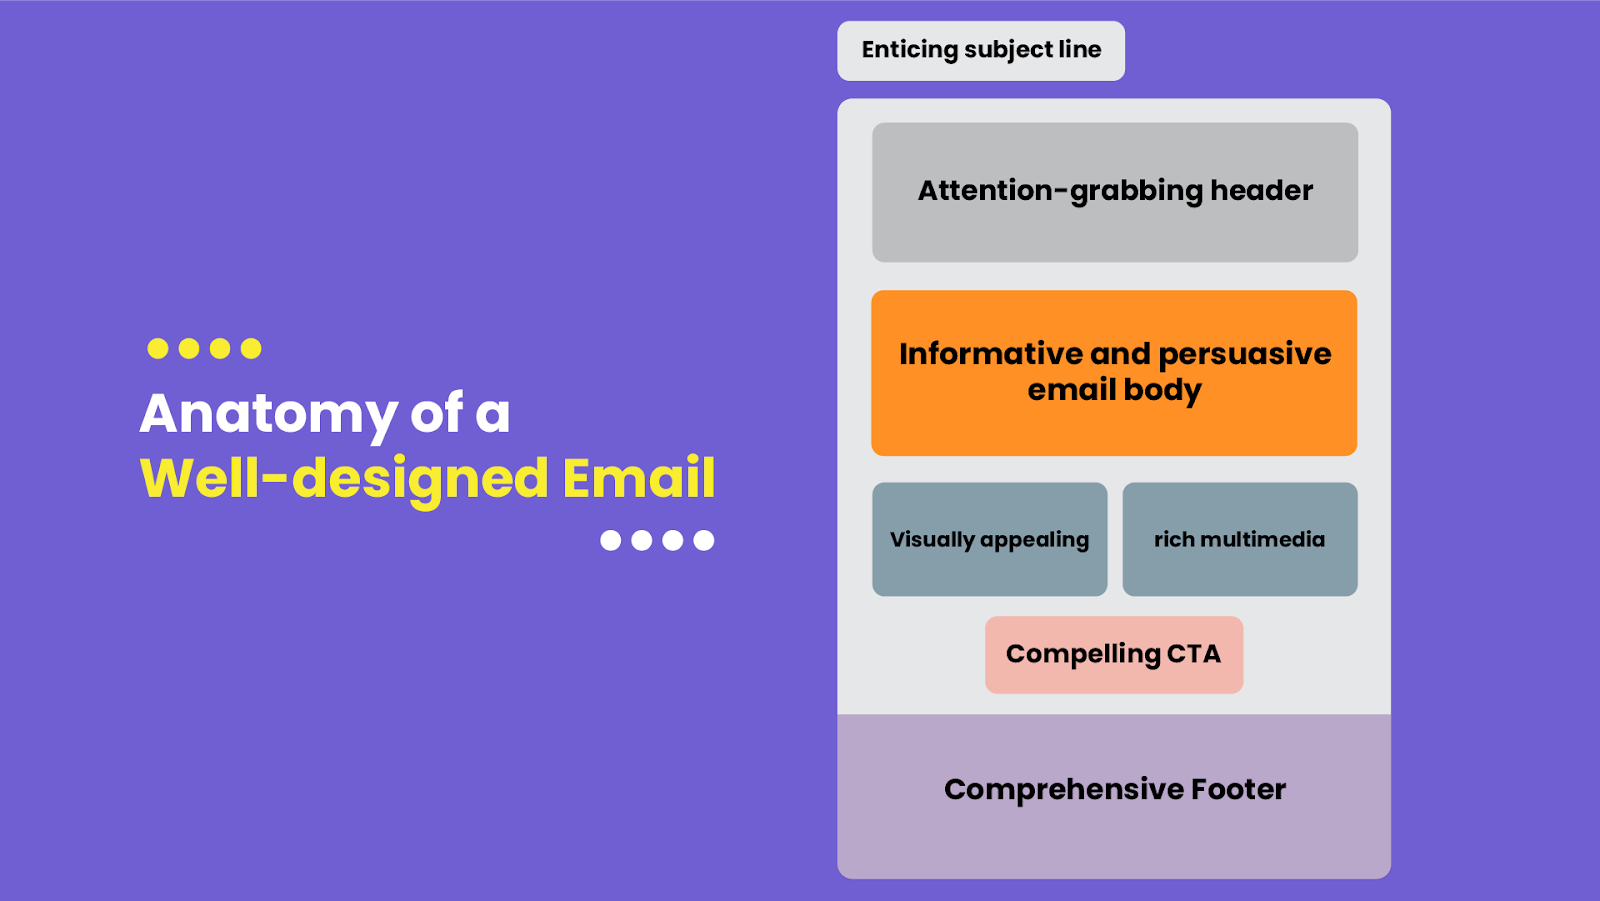 Different elements that make a well-designed email